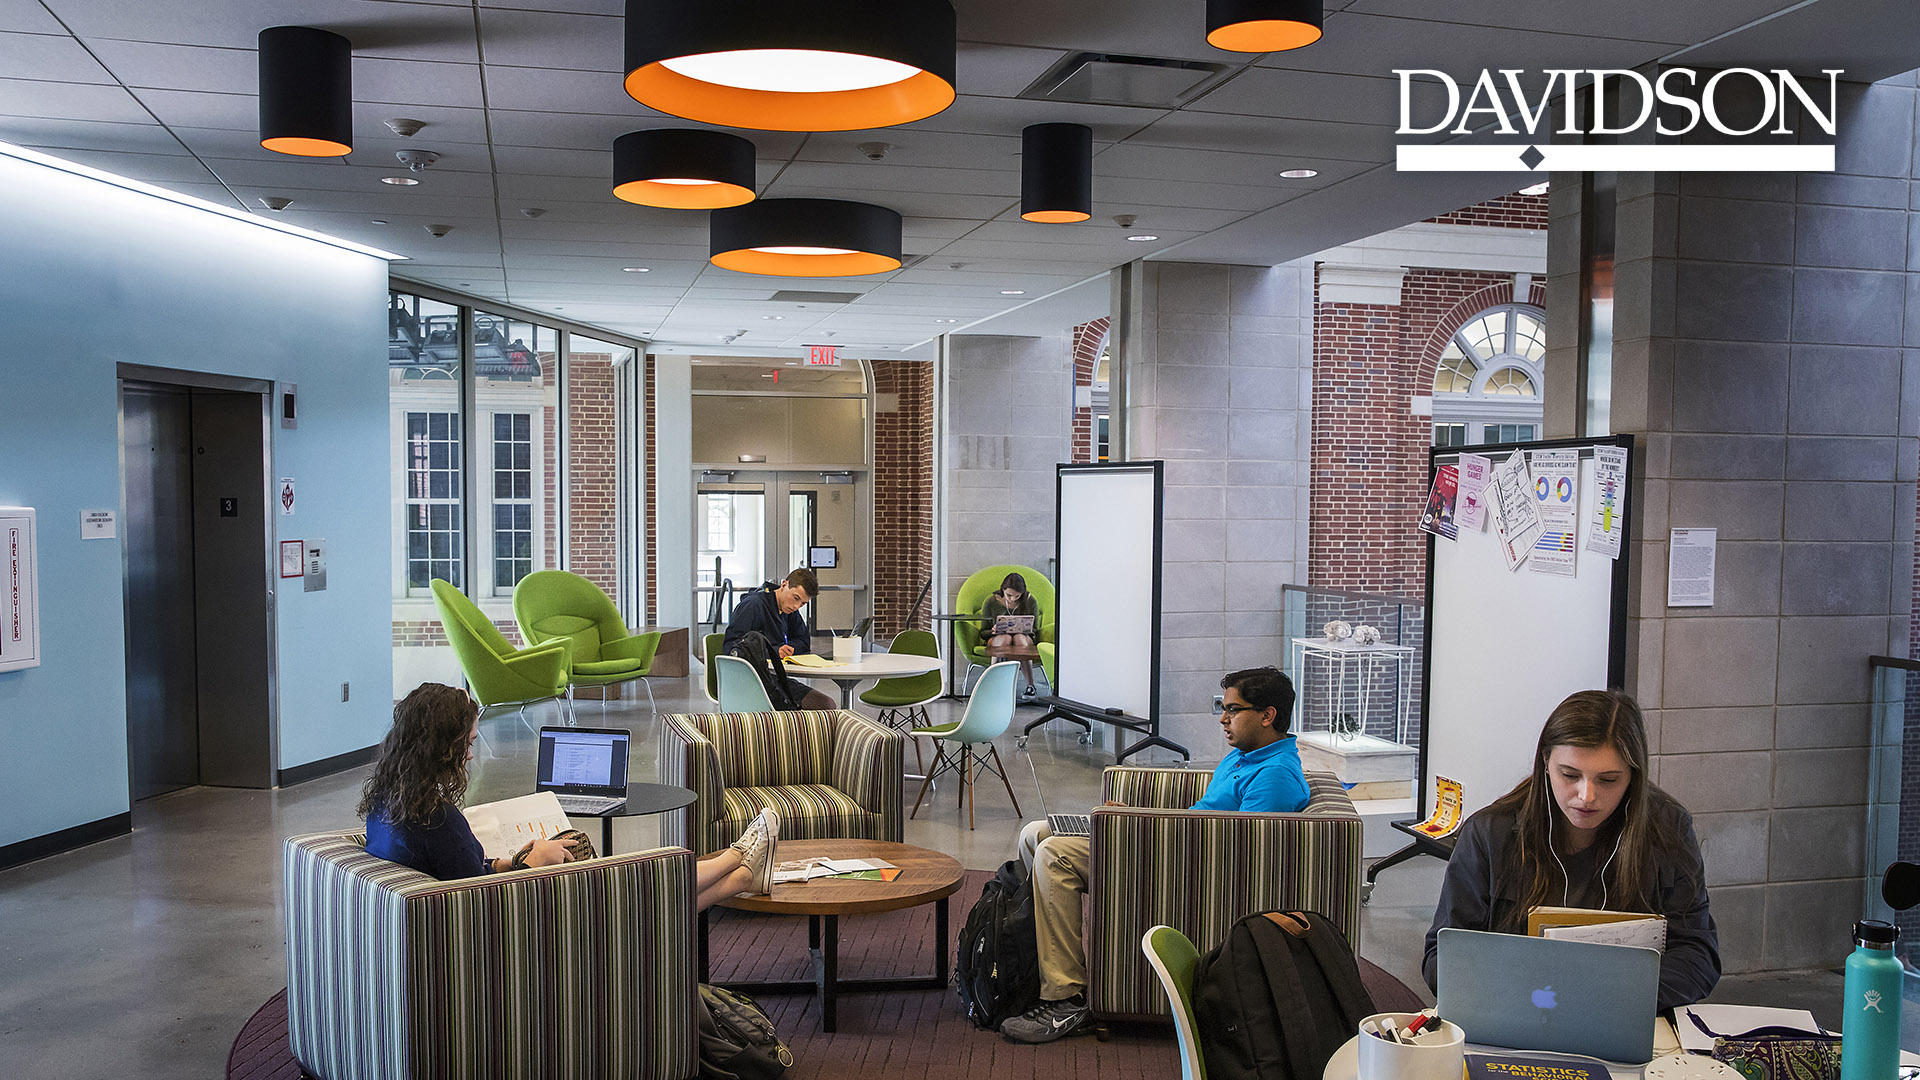 Students Studying in Wall with Davidson Bar and Diamond Logo